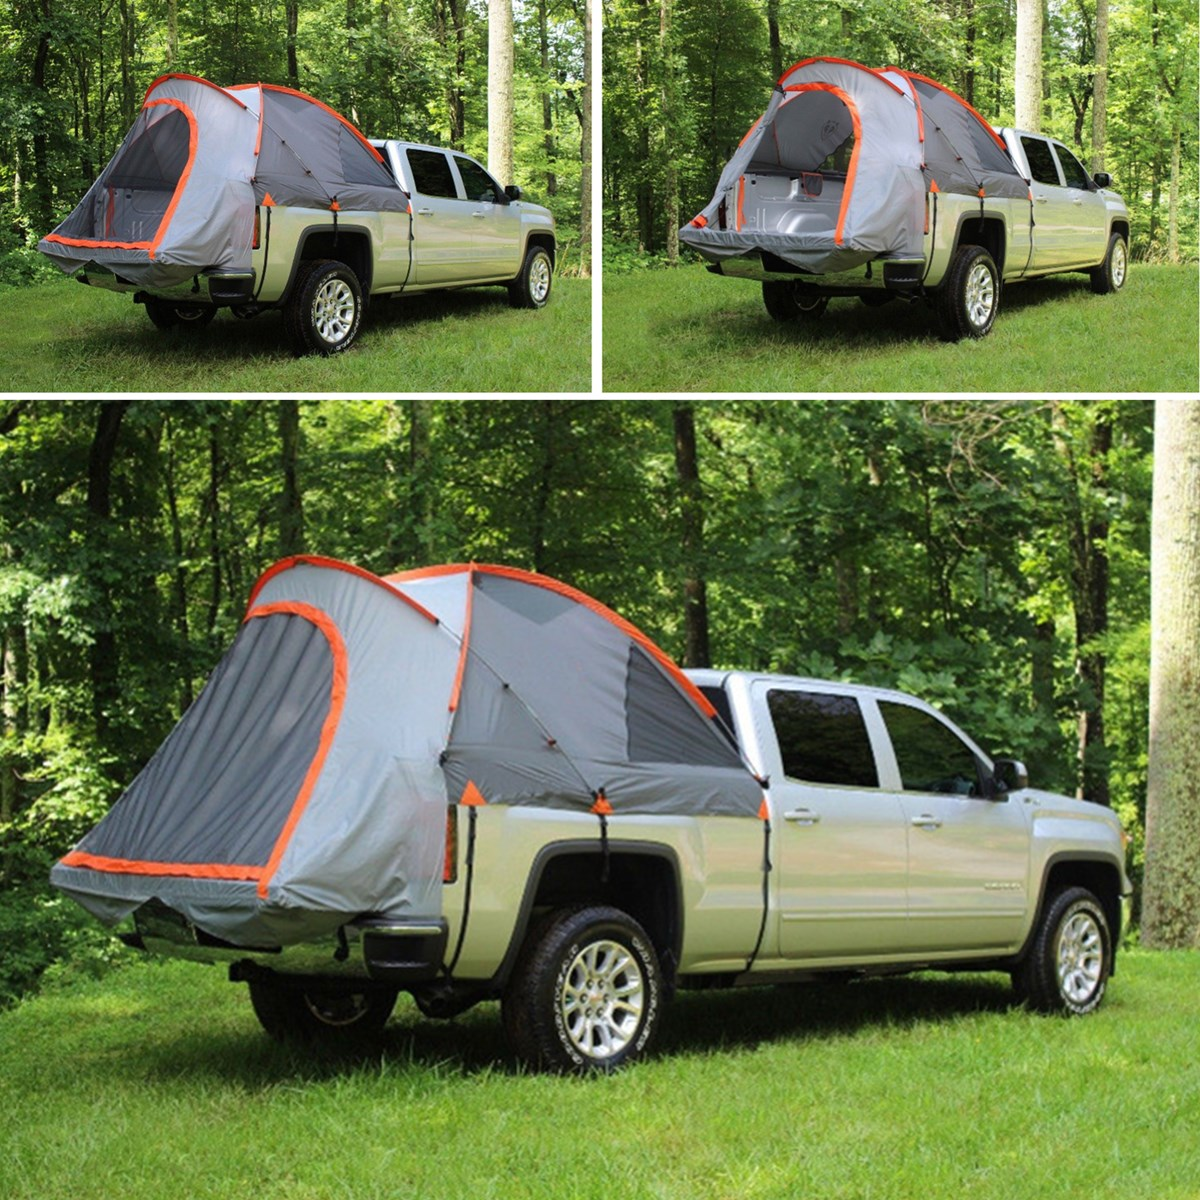 2 People Outdoor Camping Pick-Up Truck Bed Tent SUV Waterproof Canopy Camper Pickup Cover Tent Roof